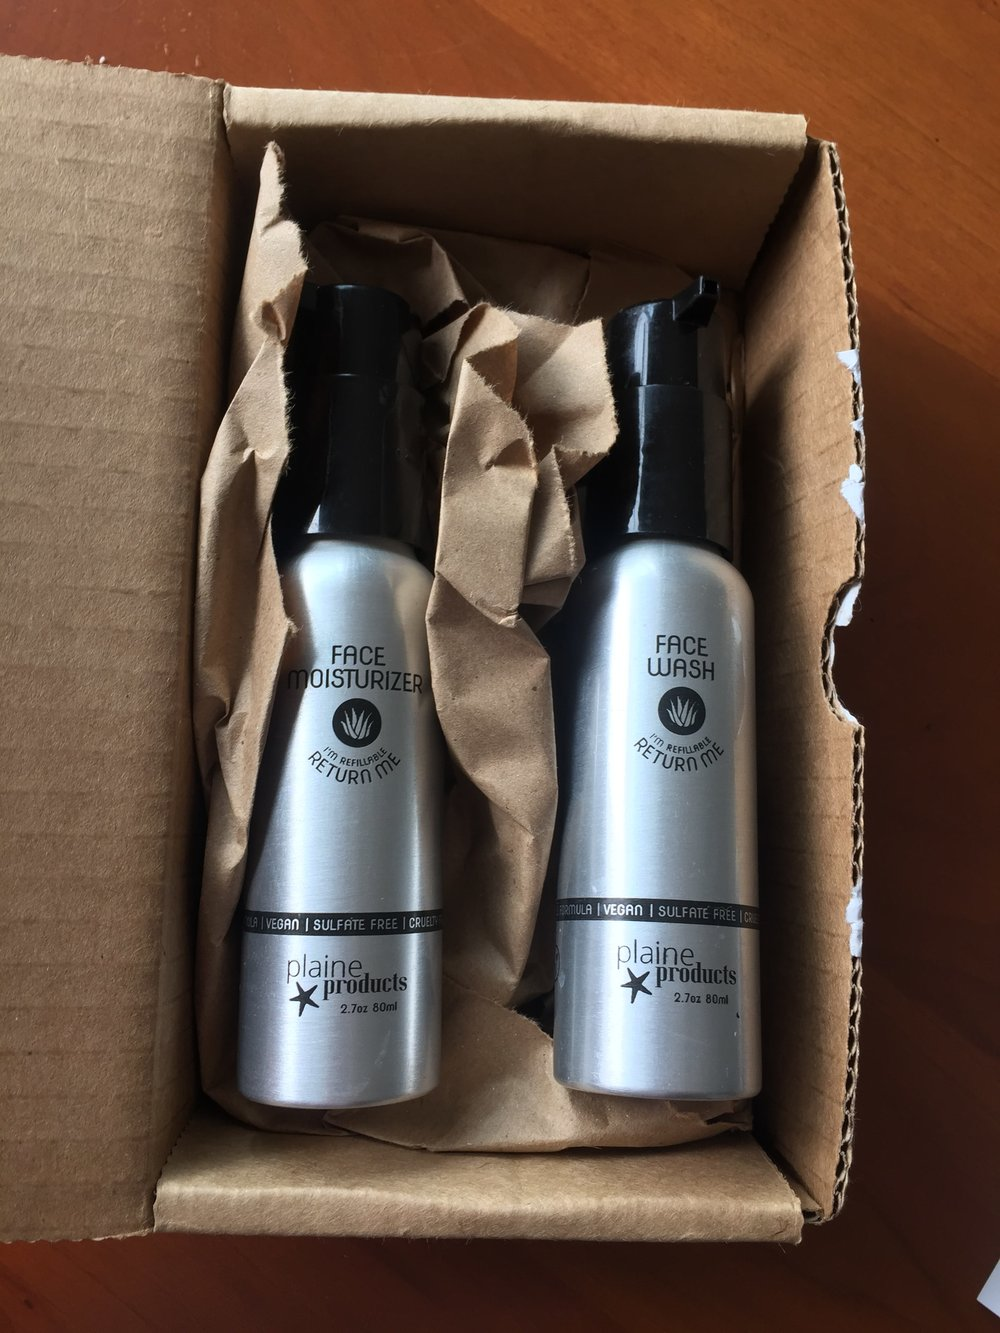 Plaine Products Face Wash and Moisturizer in aluminum container with plastic caps. Refillable and comes in plastic-free packaging.